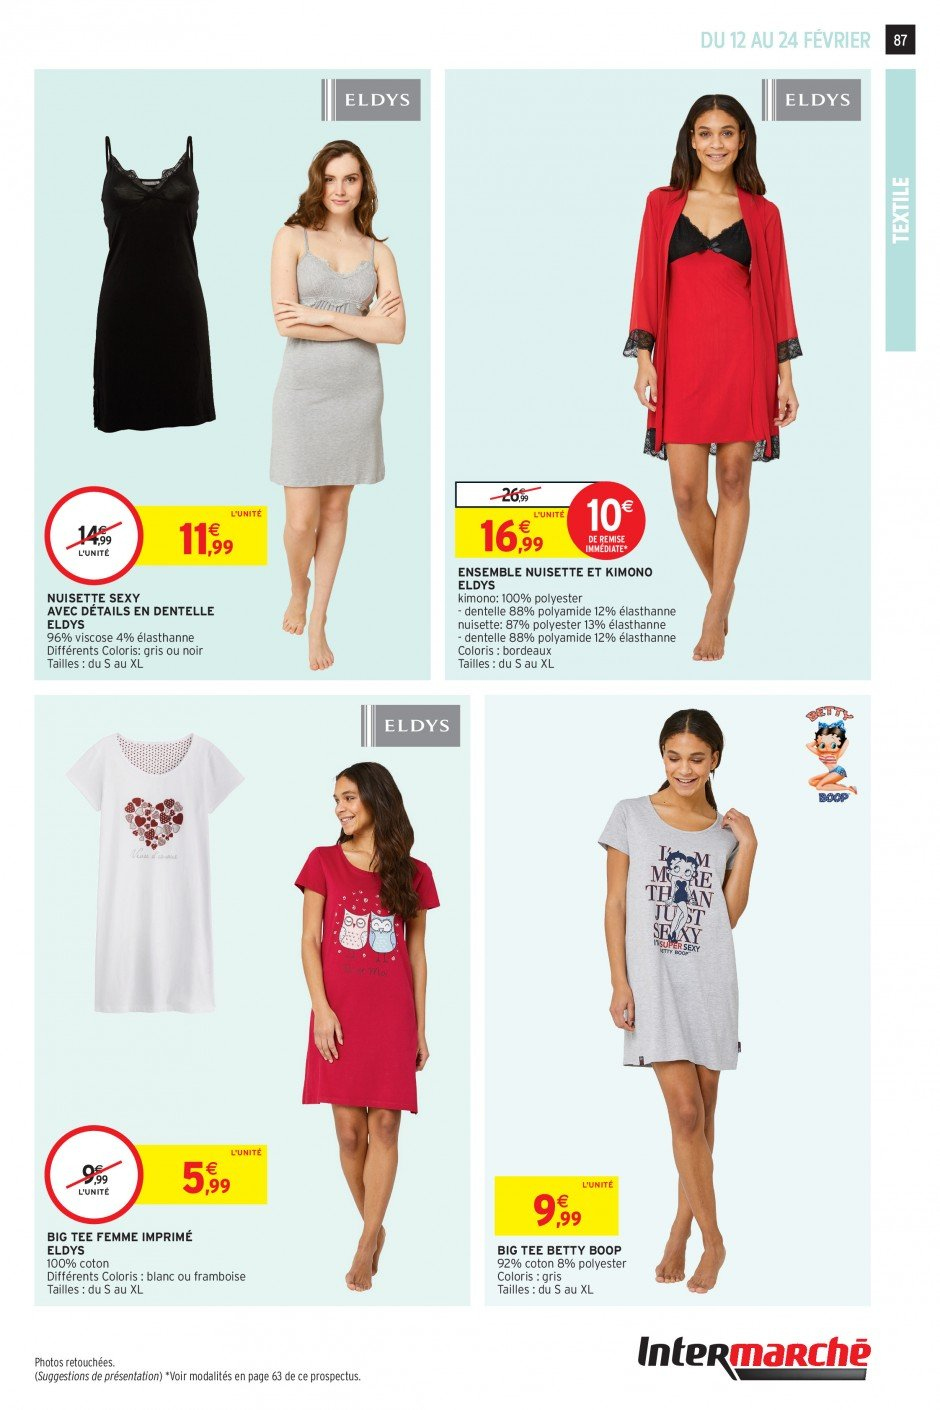 Catalogue Intermarché - 12.02.2019 - 24.02.2019. Page 85.